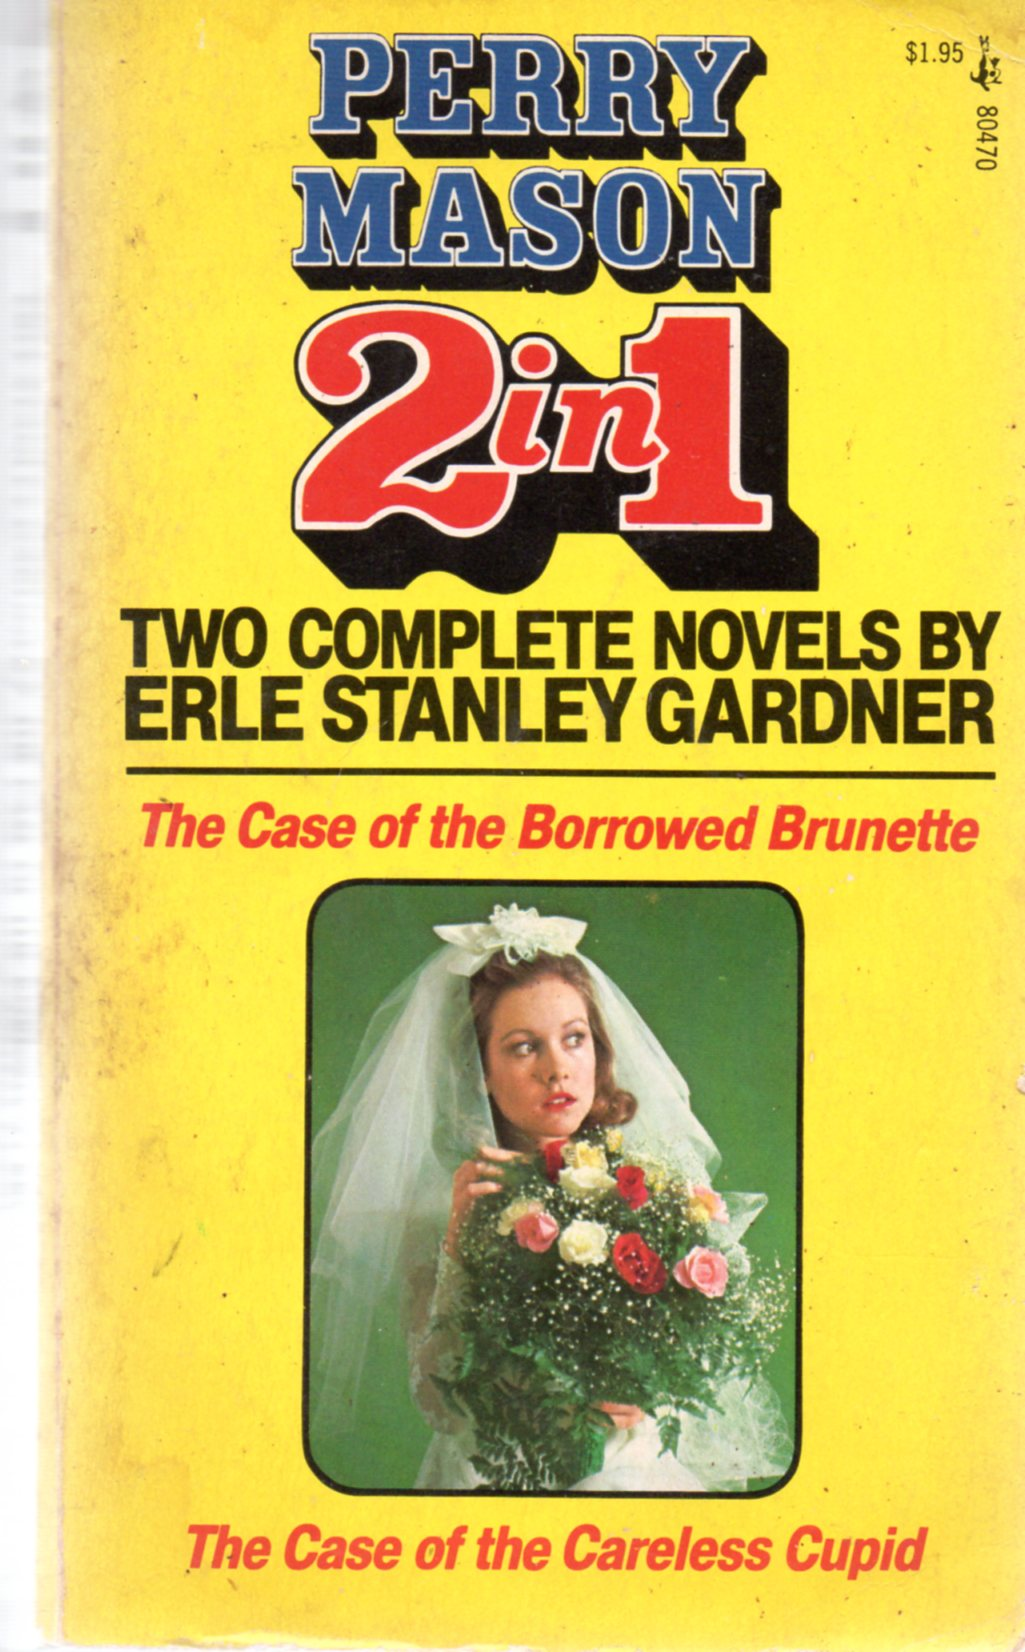 Image for The Case of The Borrowed Brunette / The Case of the Careless Cupid